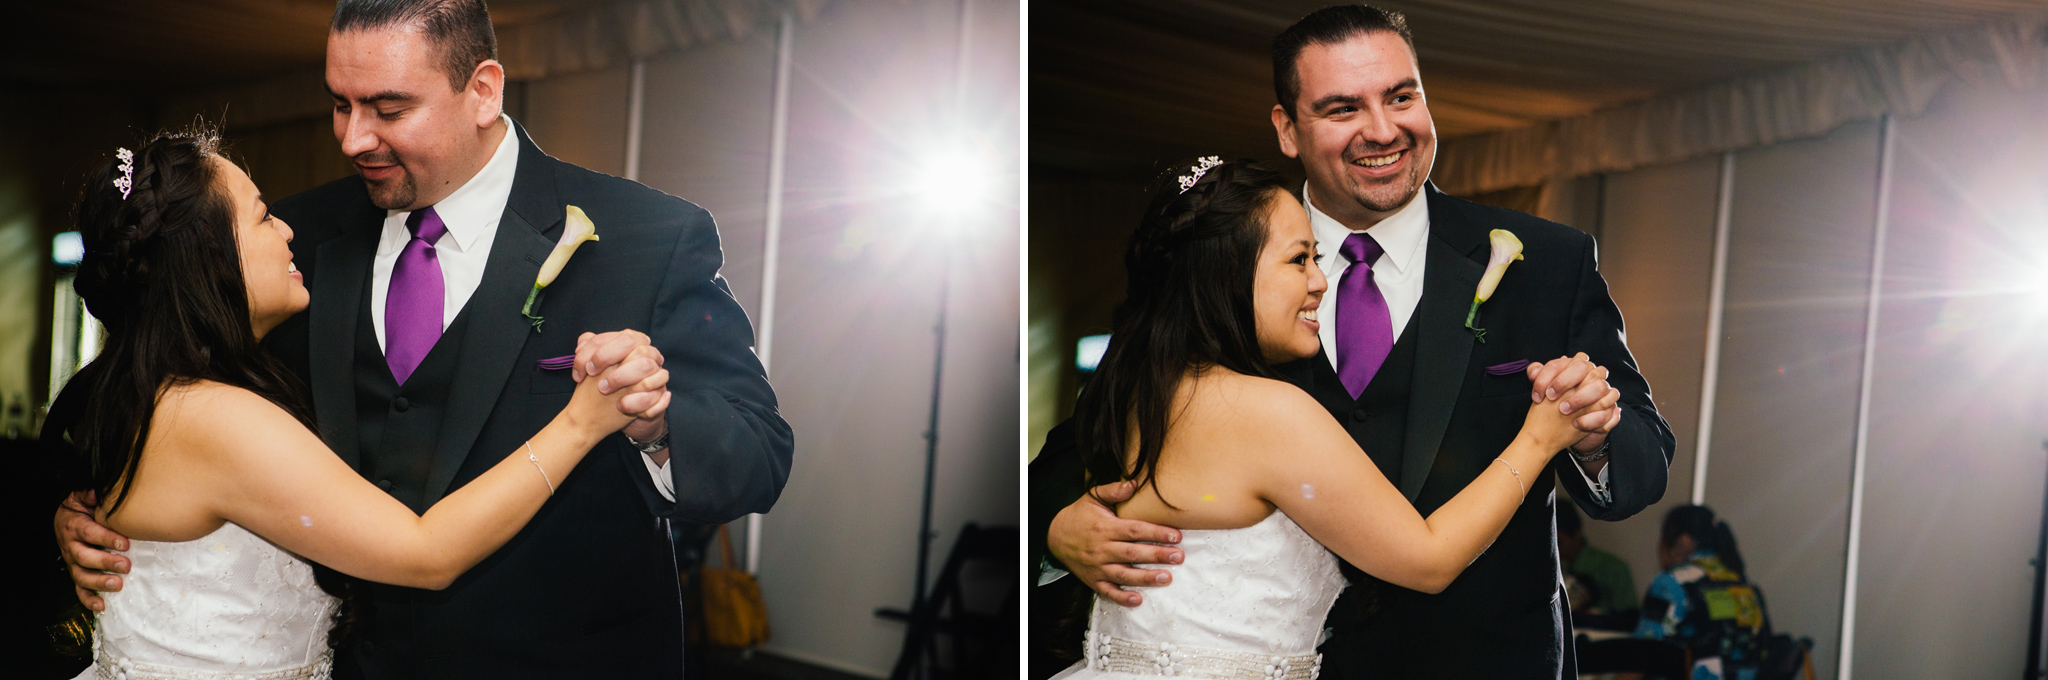 rlp-wedding-michelle+daniel018.jpg